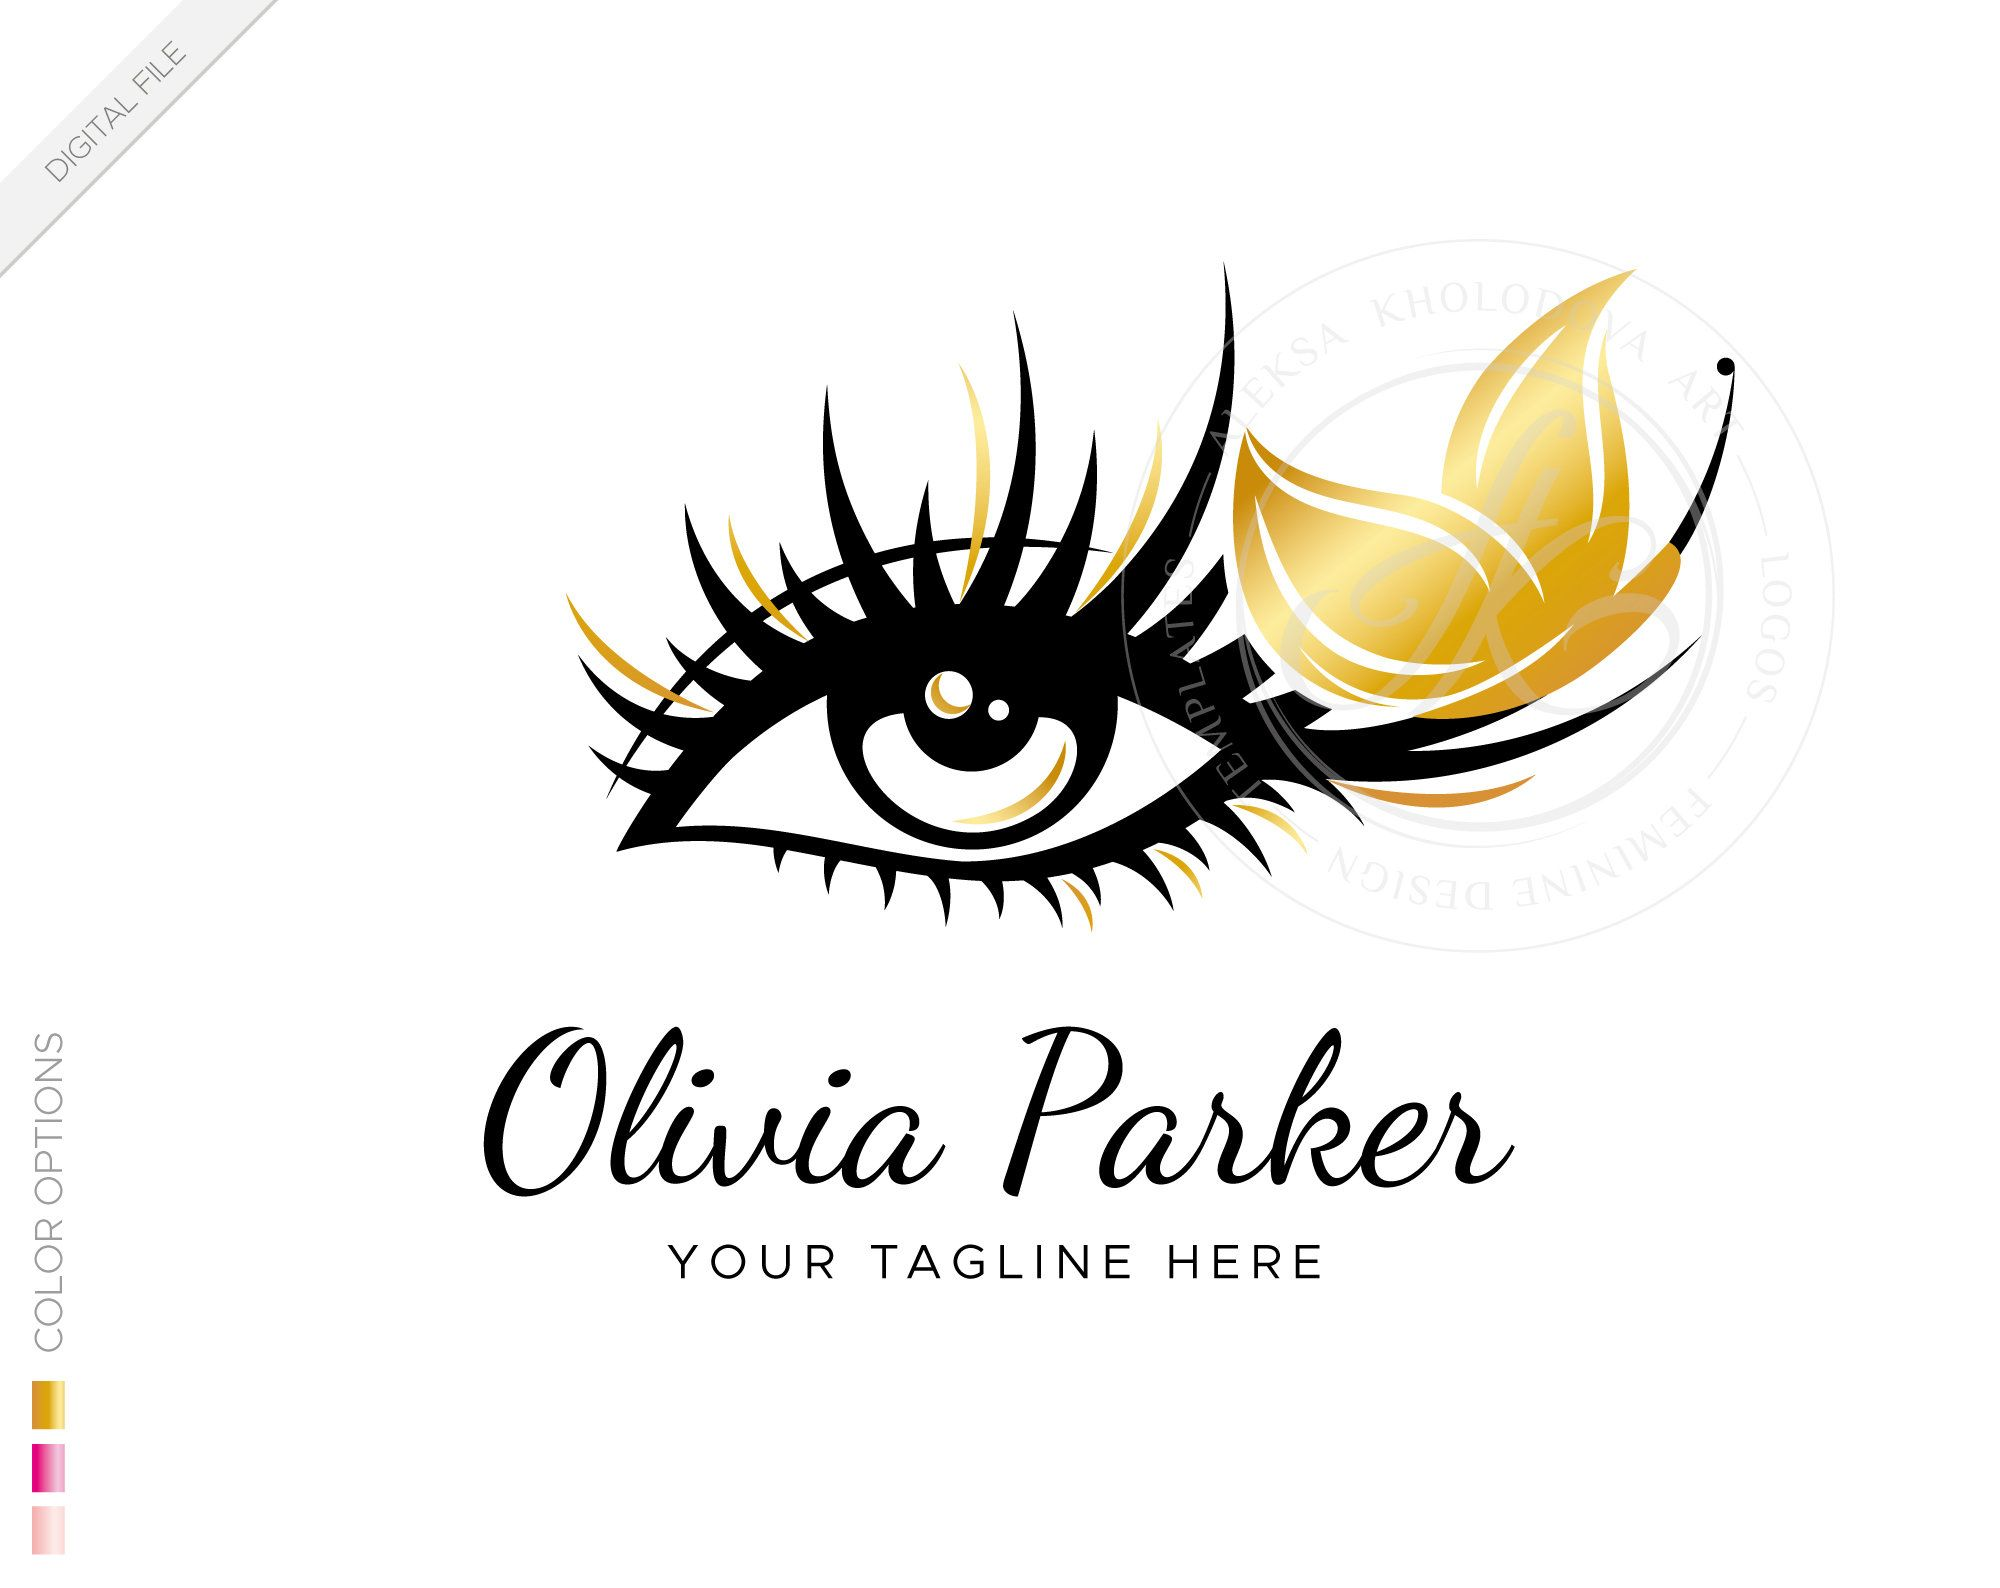 Digital premade Eyelash extension logo template with a